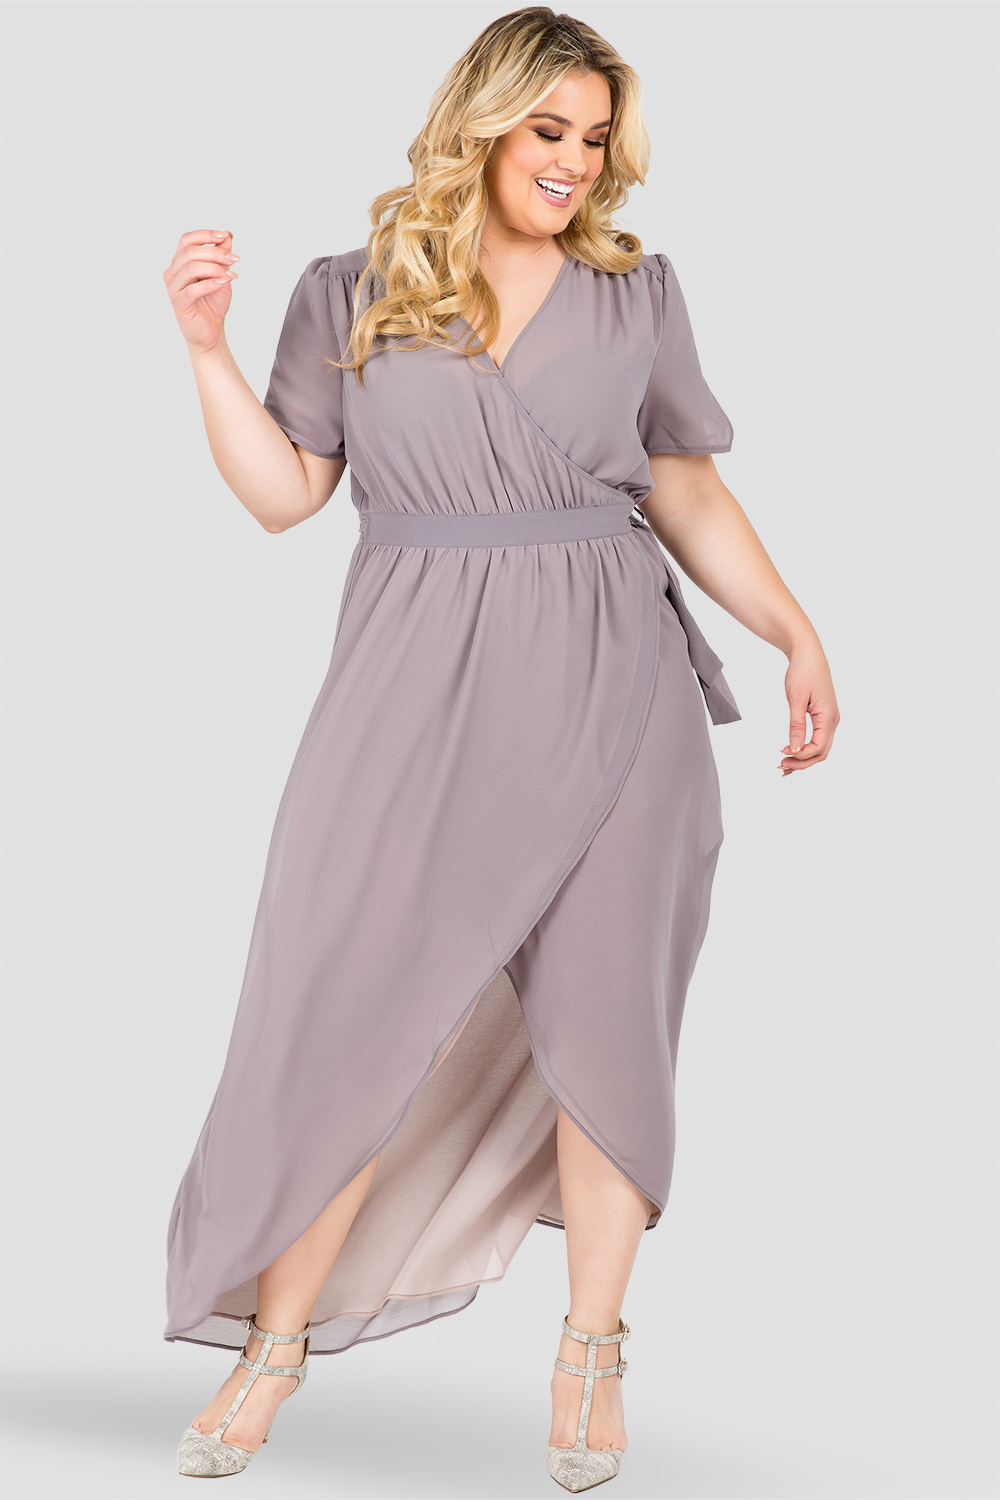 Plus Size Robin Short Sleeve V-Neck Maxi Dress Smokey Grey And Mauve